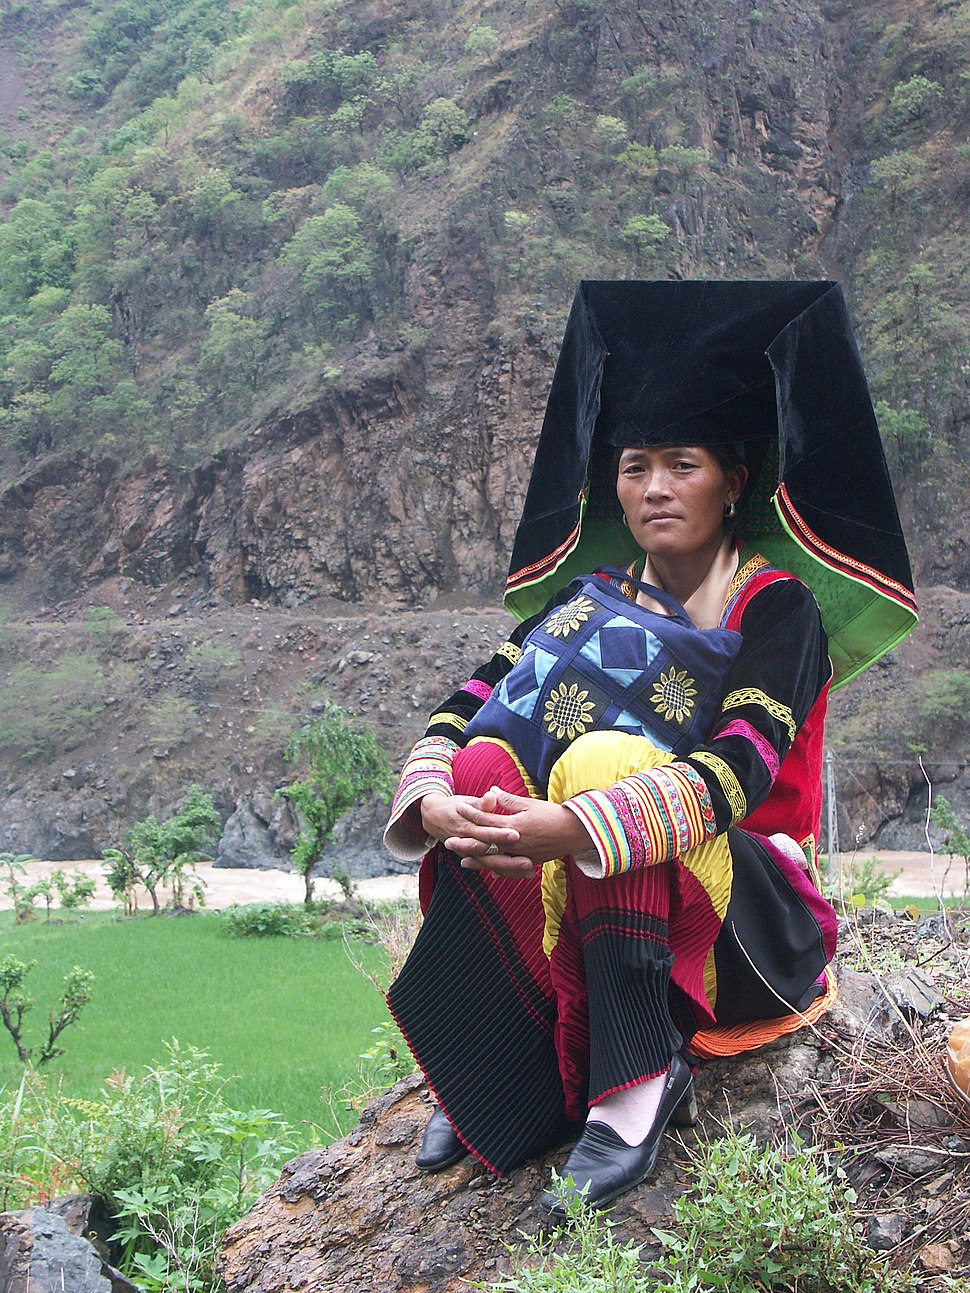 Yi woman in traditional dressing